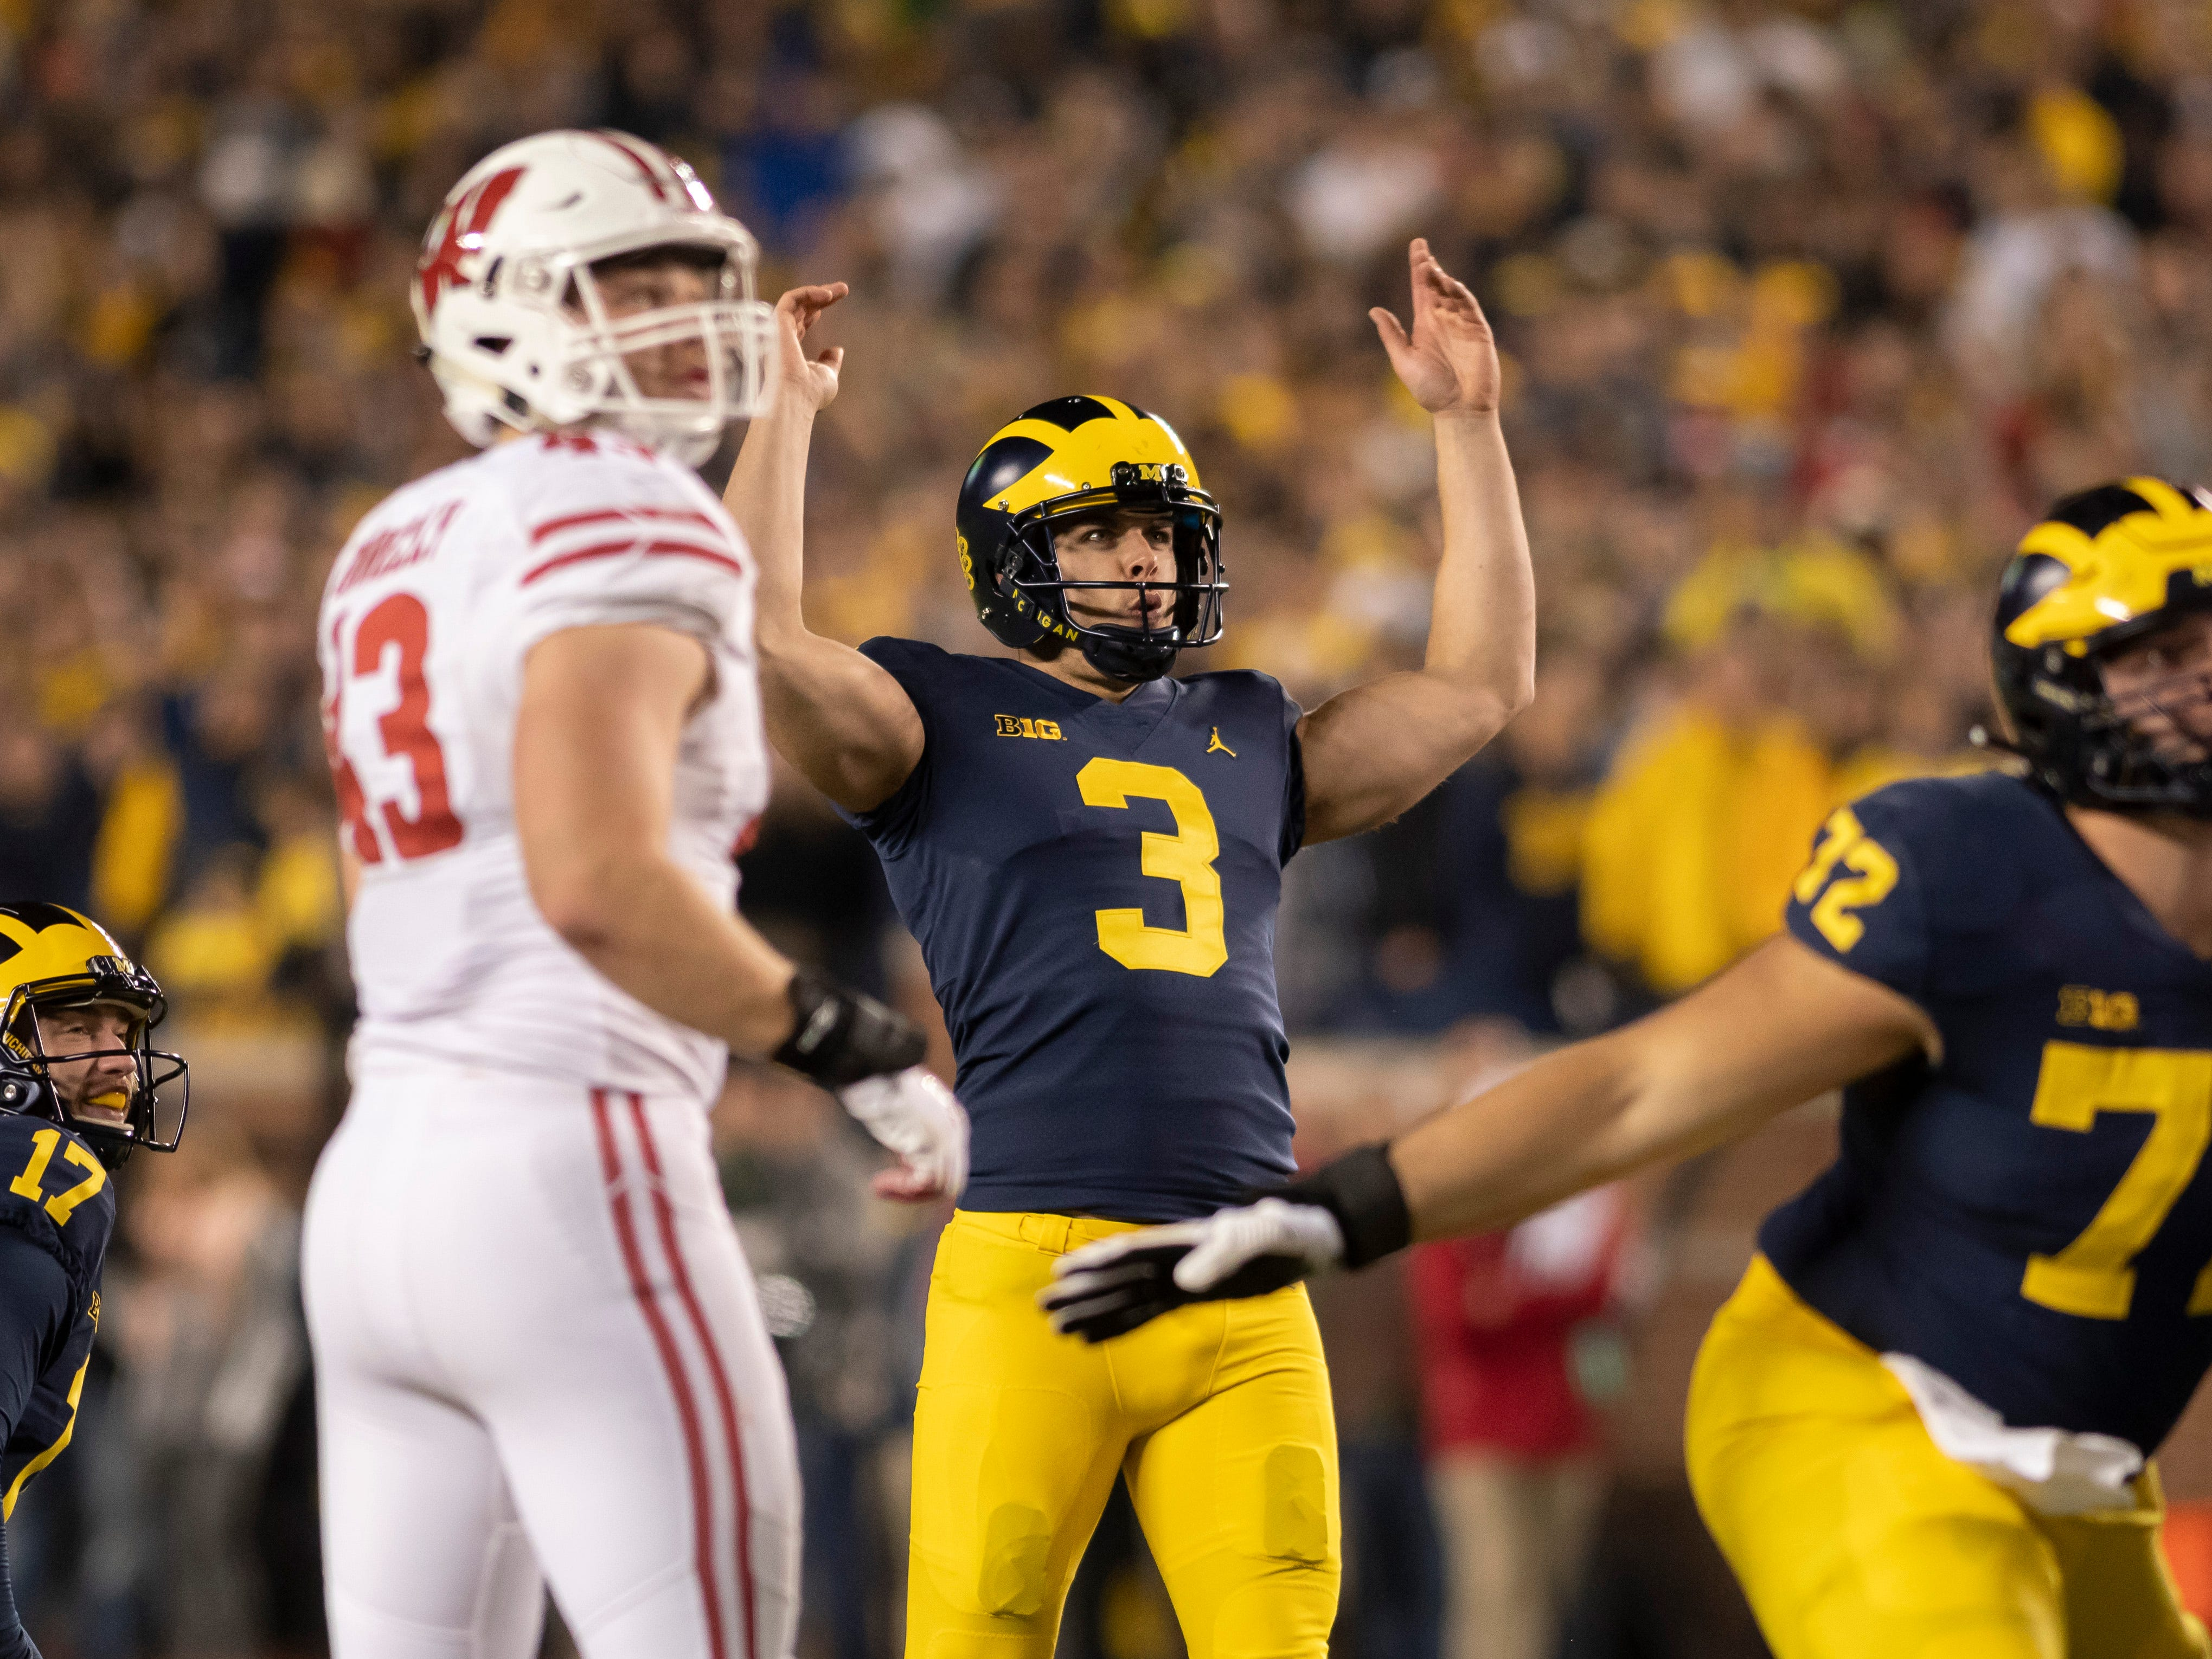 KICKER: Quinn Nordin – Nordin was the kicker most of last season, then freshman Jake Moody took over the final three games. He was All-Big Ten honorable mention in 2017. Nordin is known for his big leg but consistency is what will earn him the job over Moody.